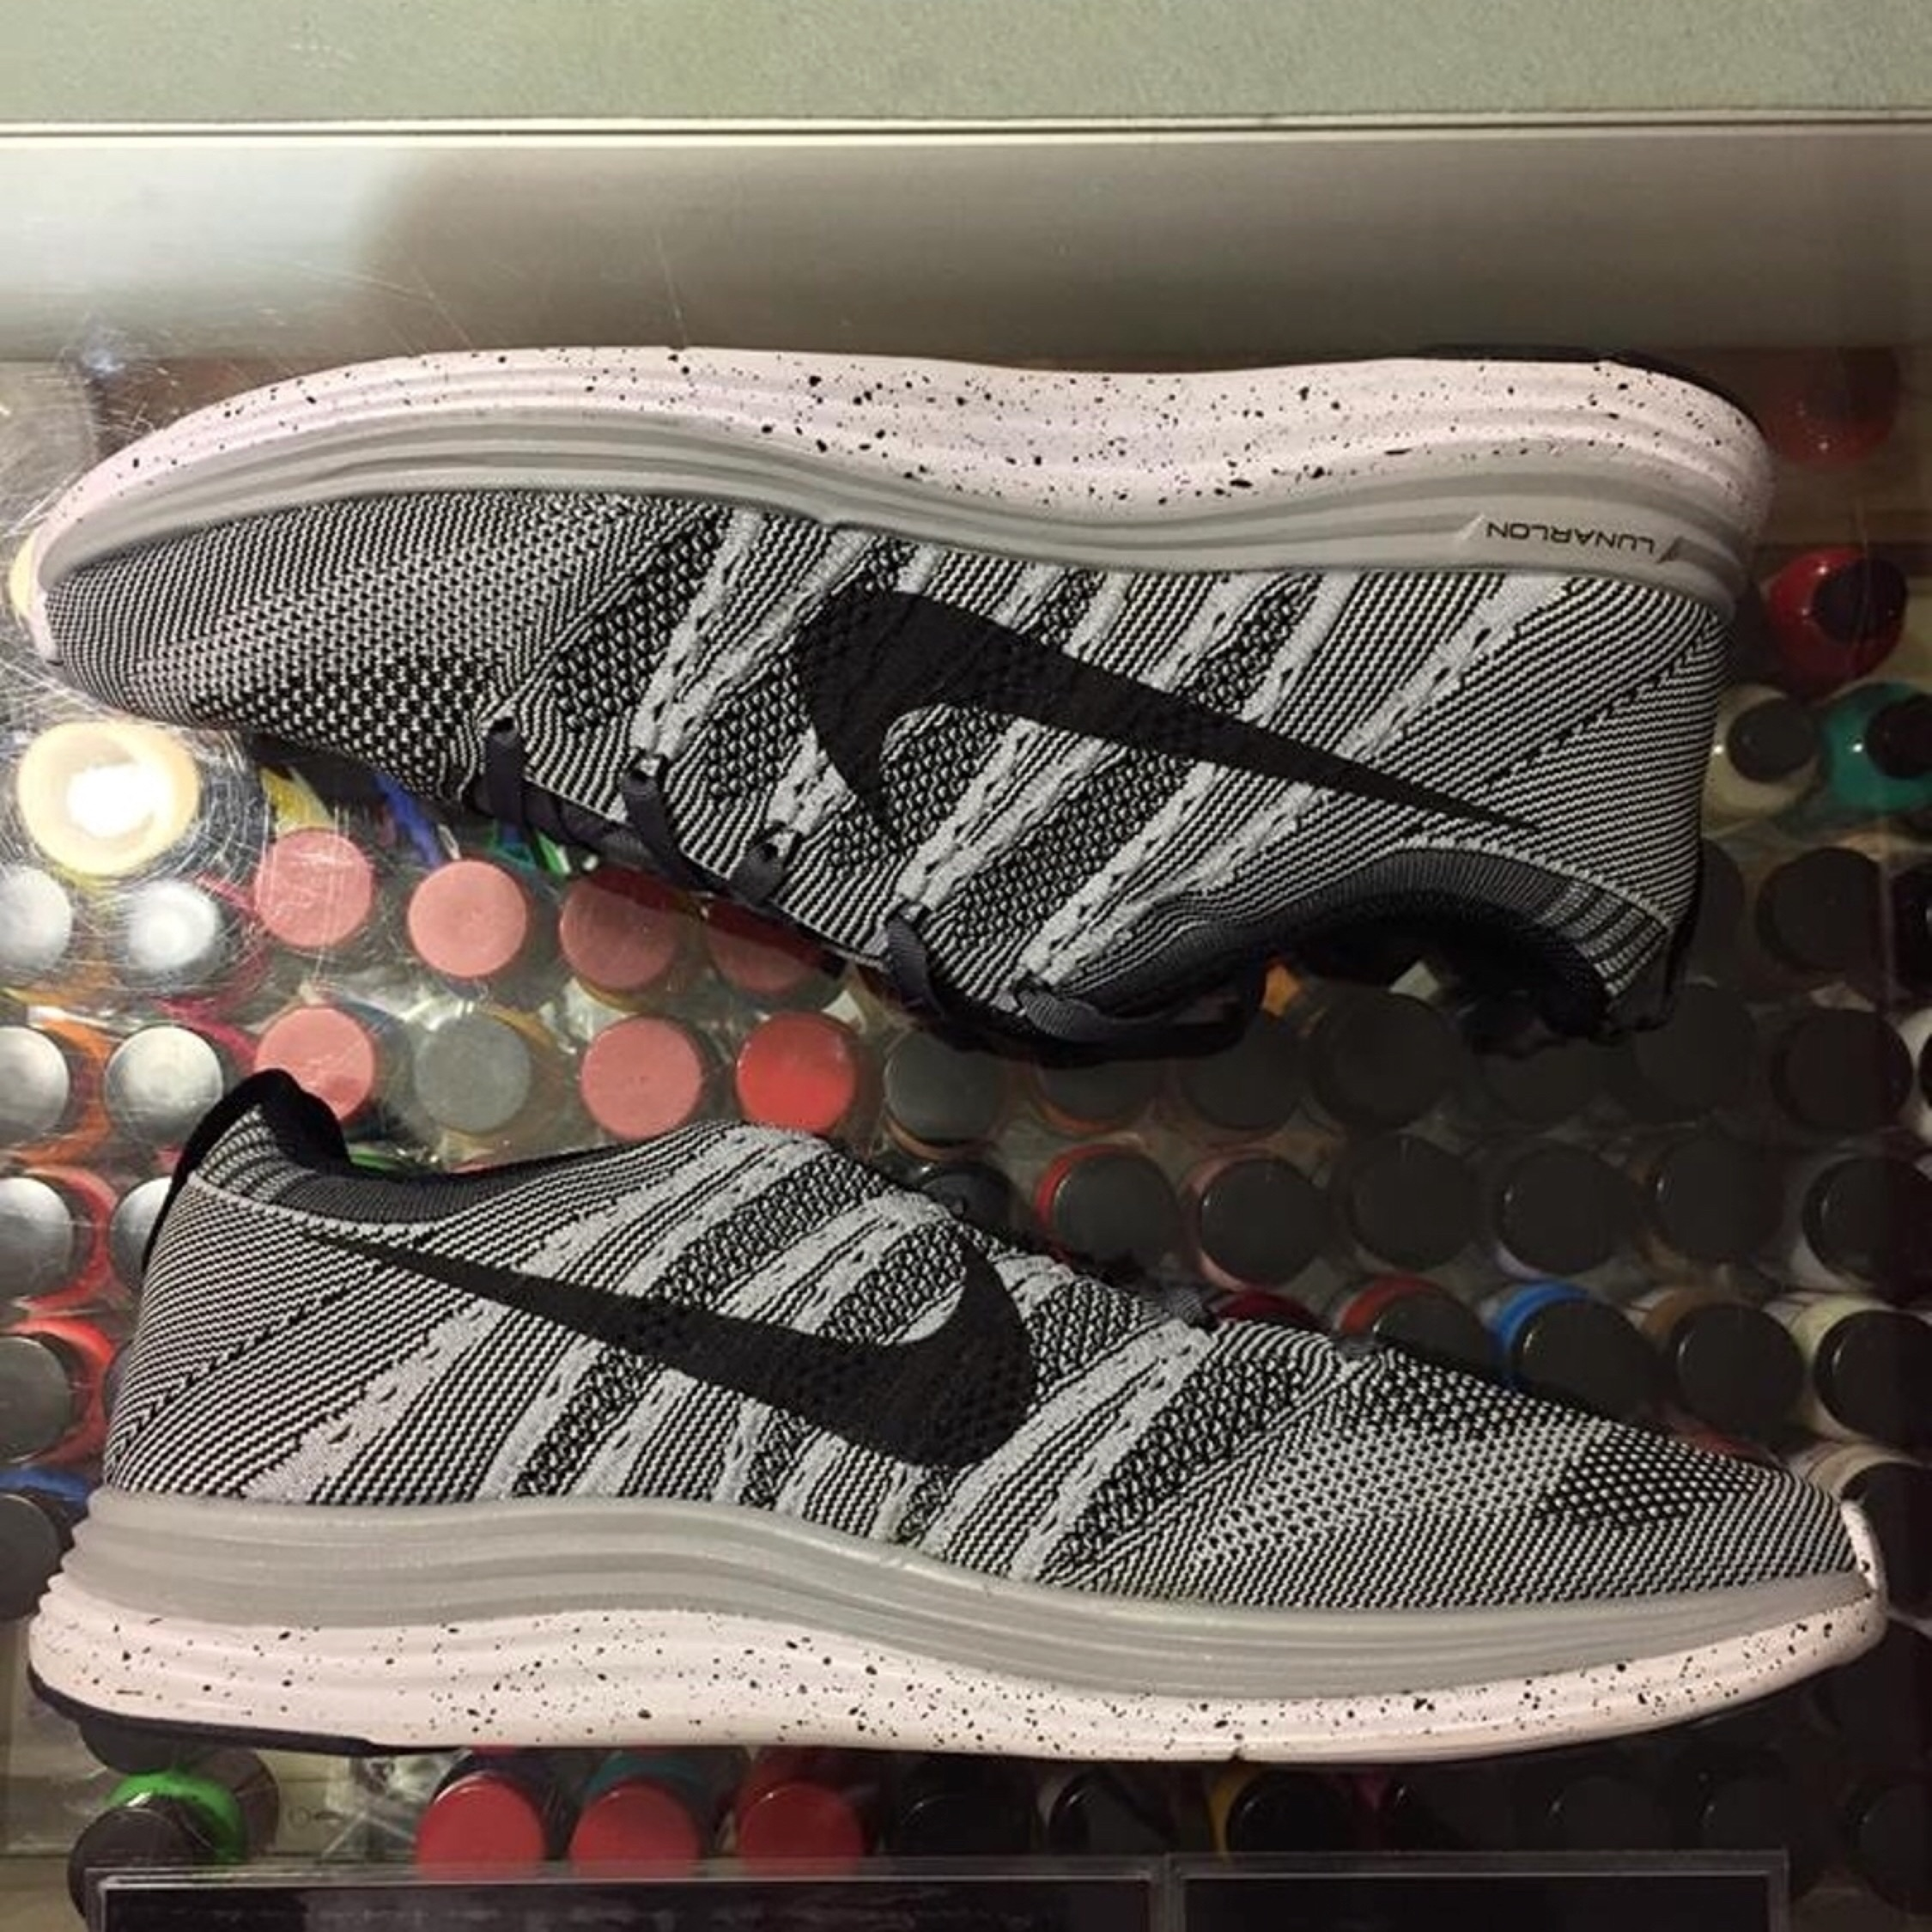 crazy price best deals on 2018 shoes Nike Flyknit One Wolf Grey Sneakers 10.5